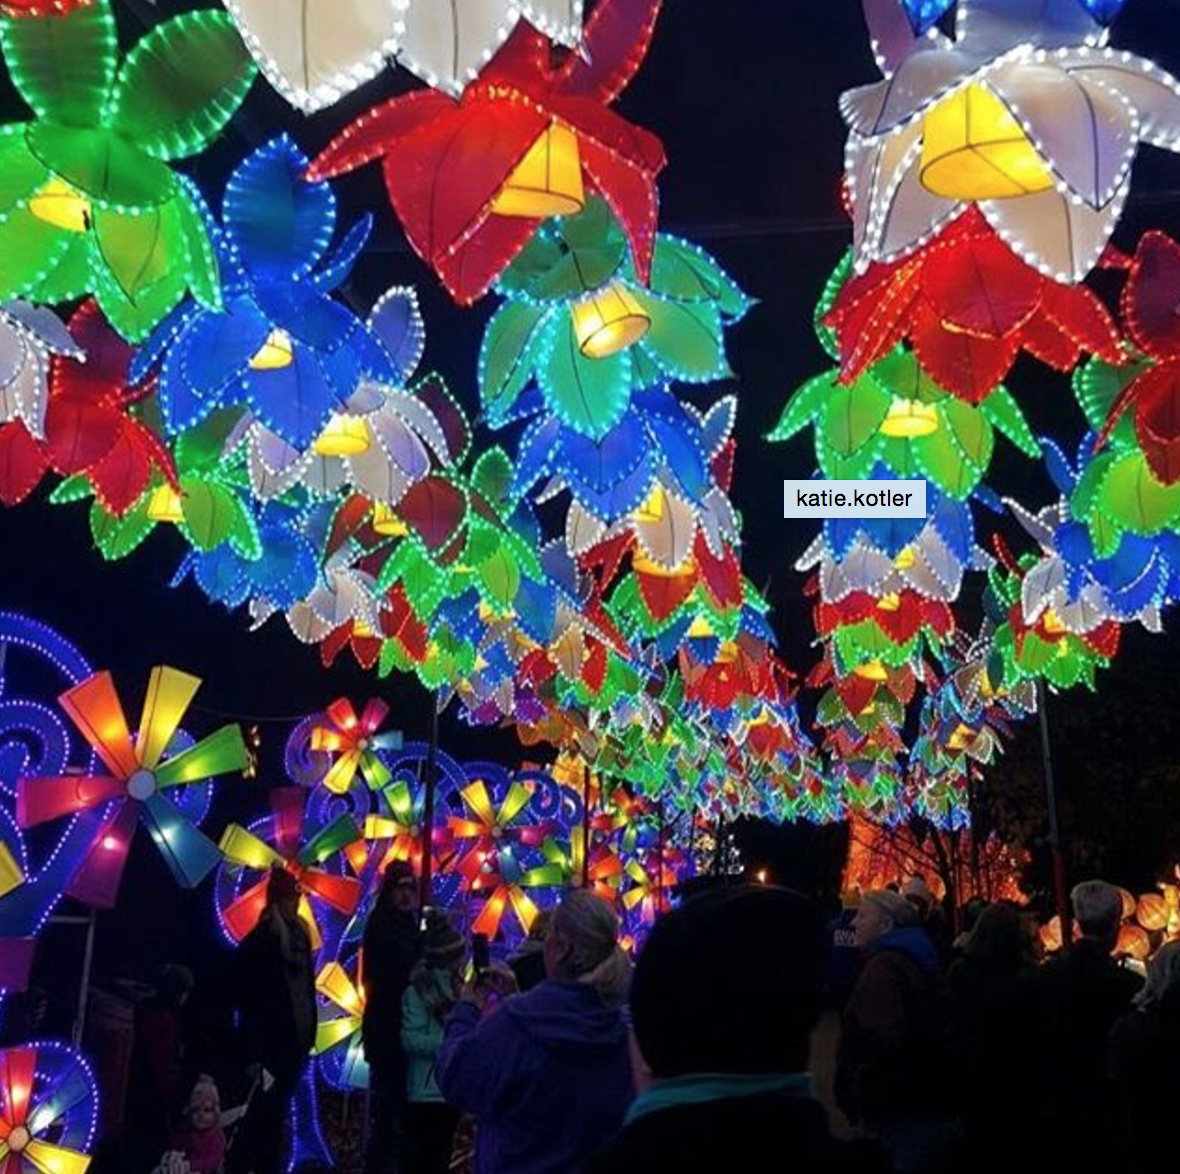 Photo by @katie.kotler at the Ohio Chinese Lantern Festival in Columbus, Ohio